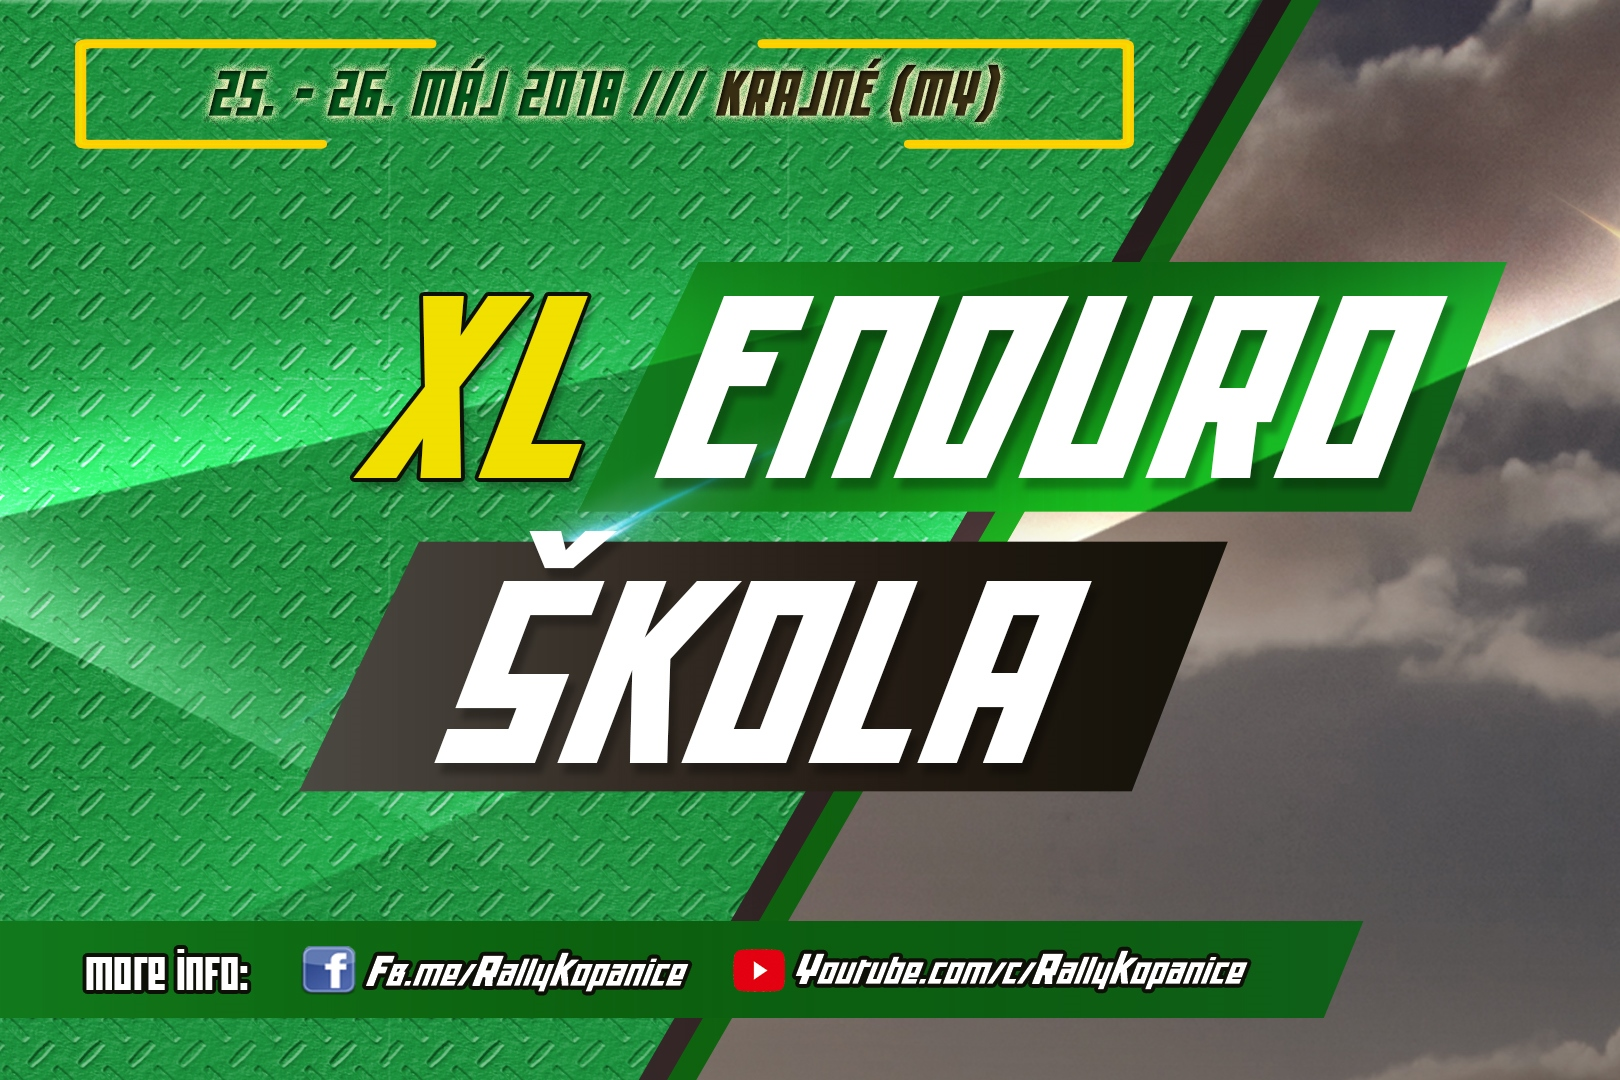 XL Enduro škola 2018